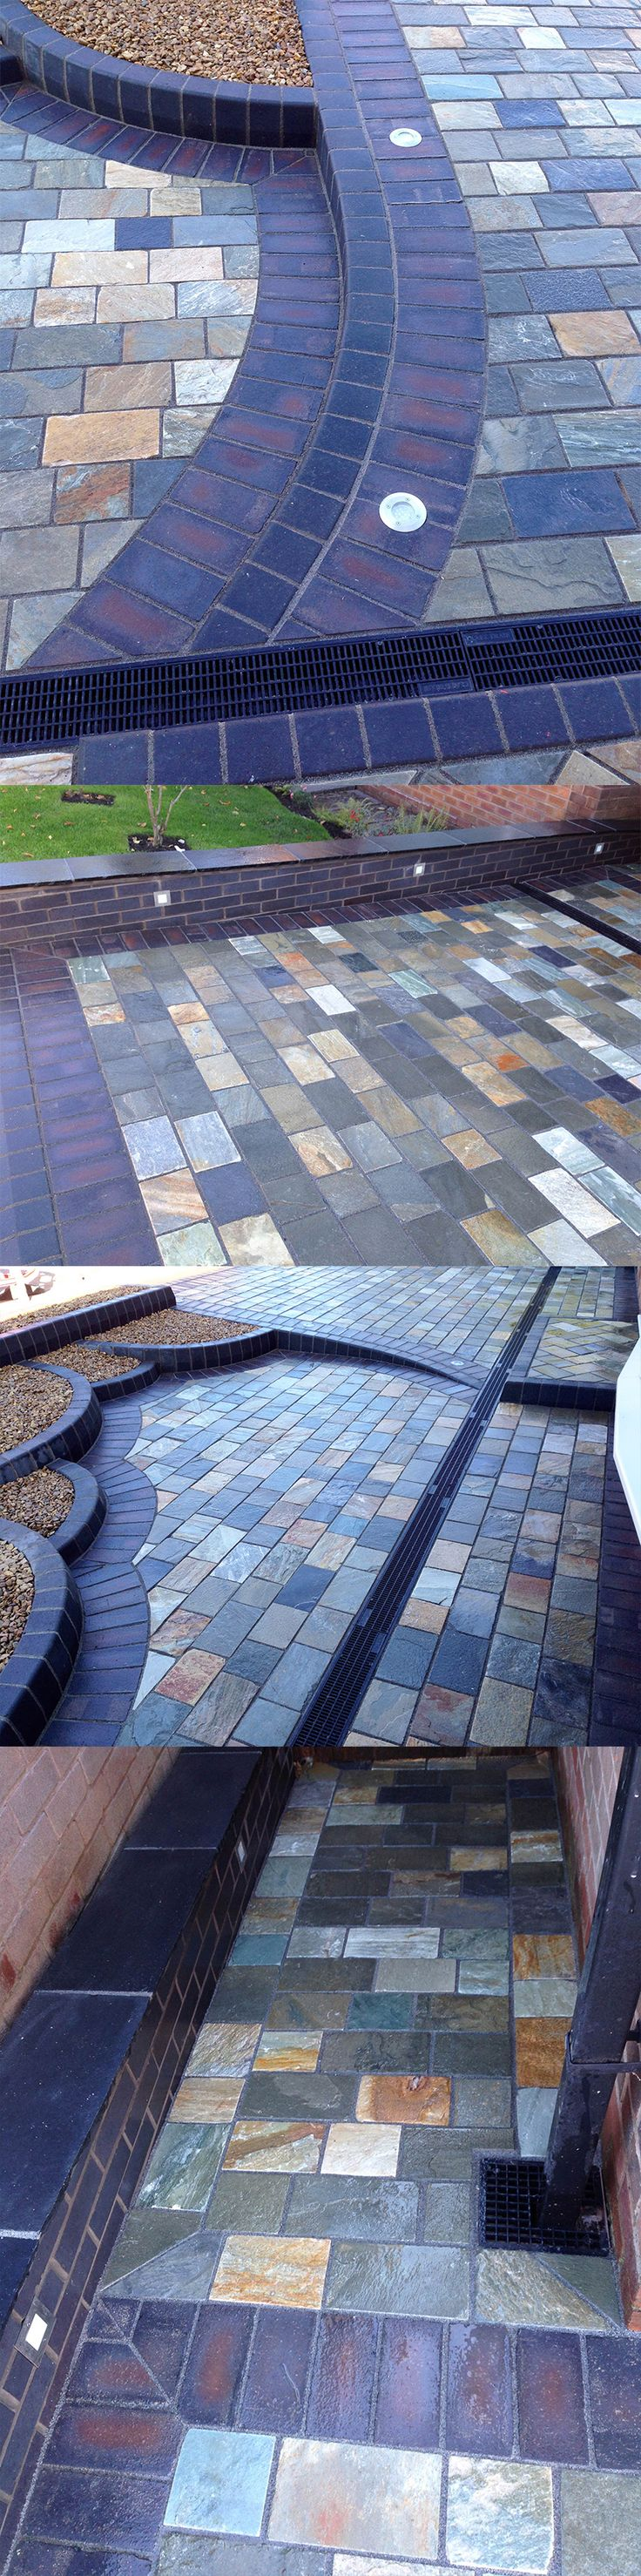 the 25 best paver sand ideas on pinterest paver patterns paver stones and patio mold ideas